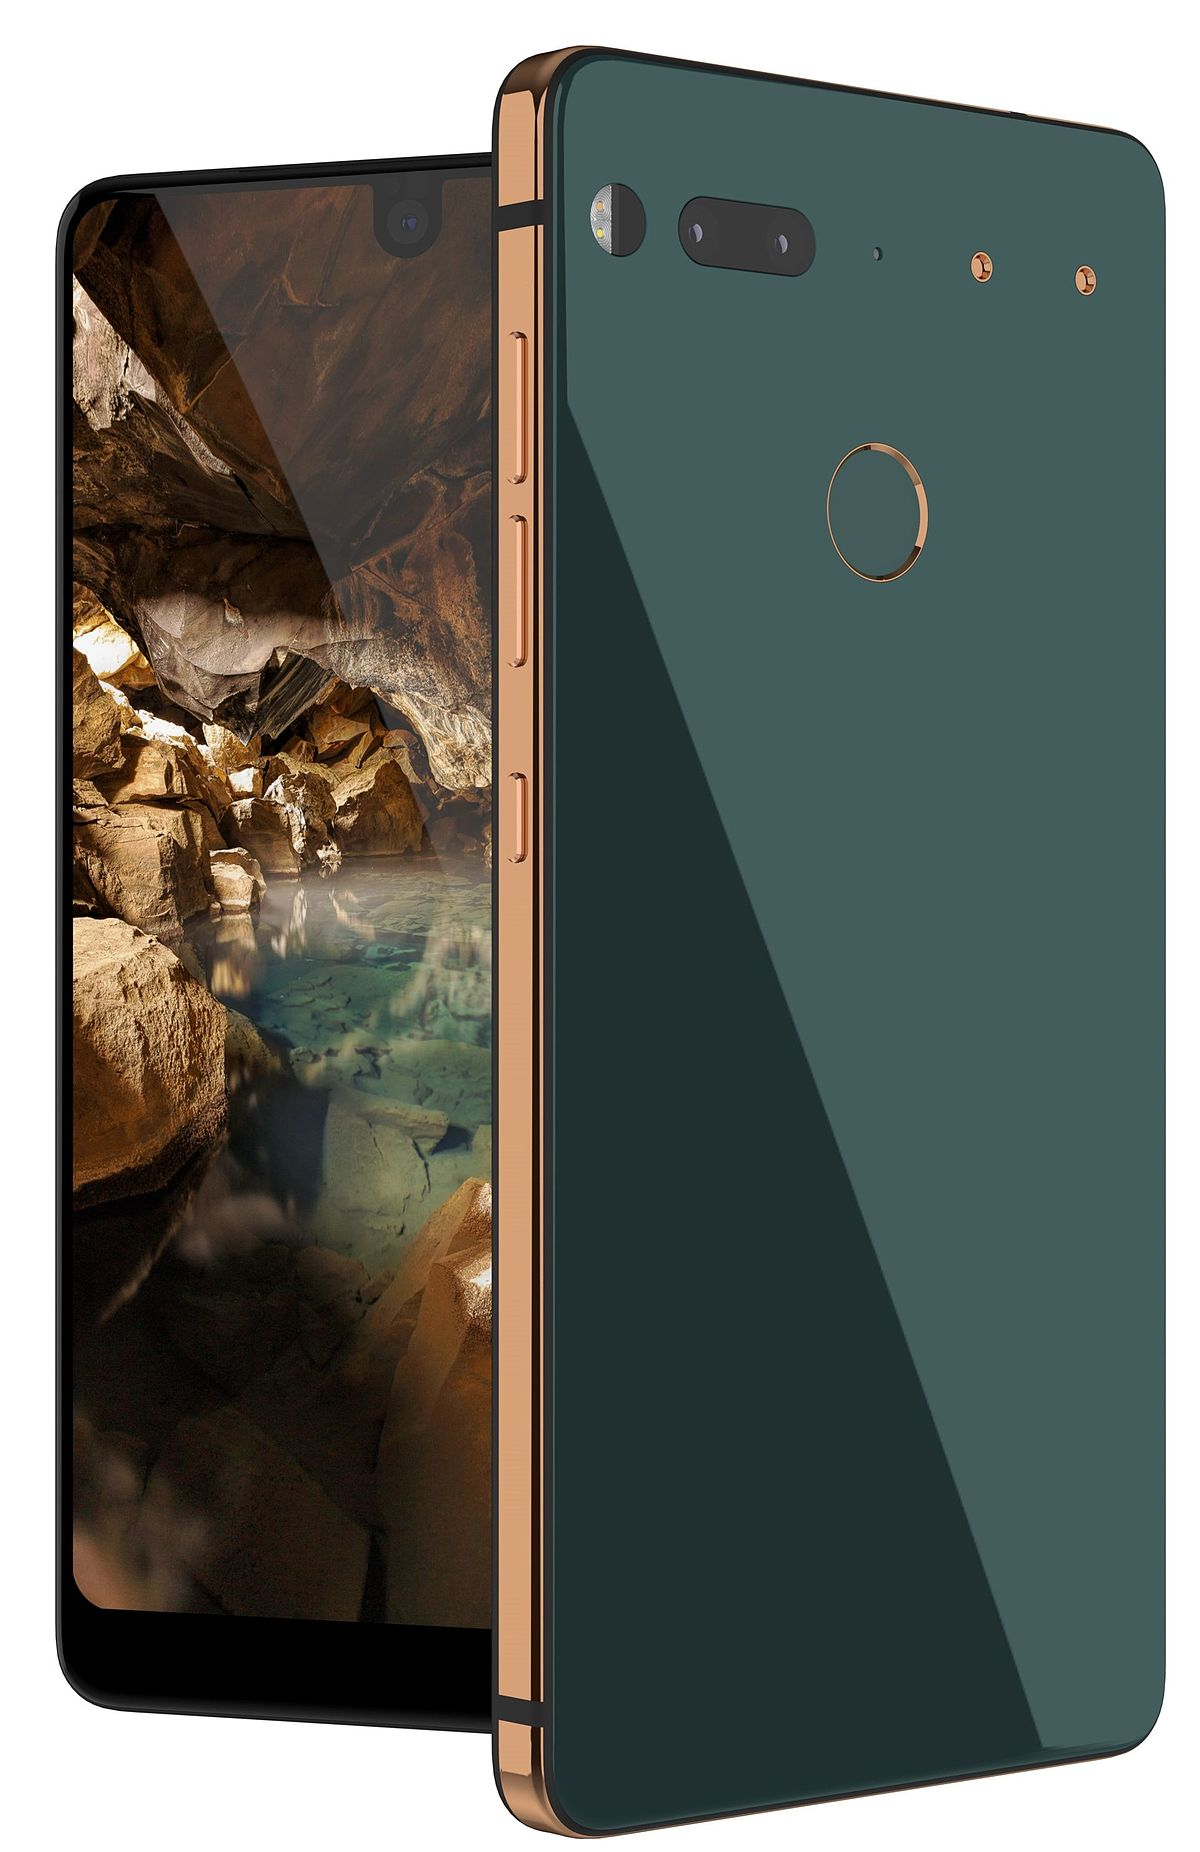 Essential Phone - Wikipedia